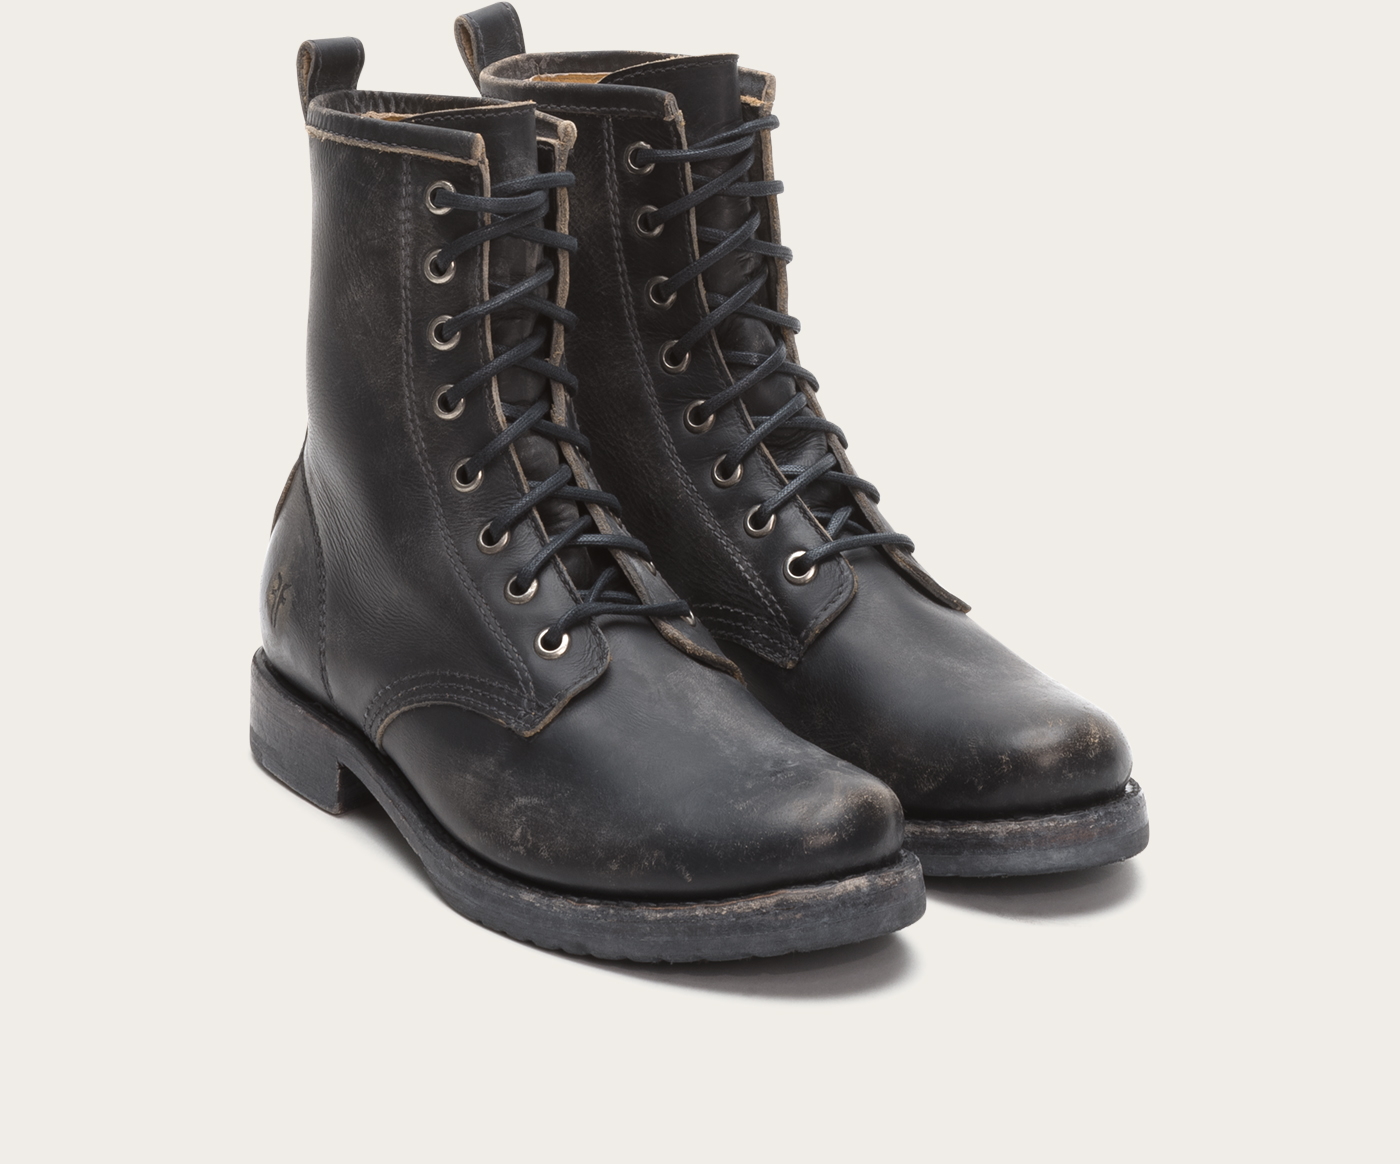 Military style: combat boots